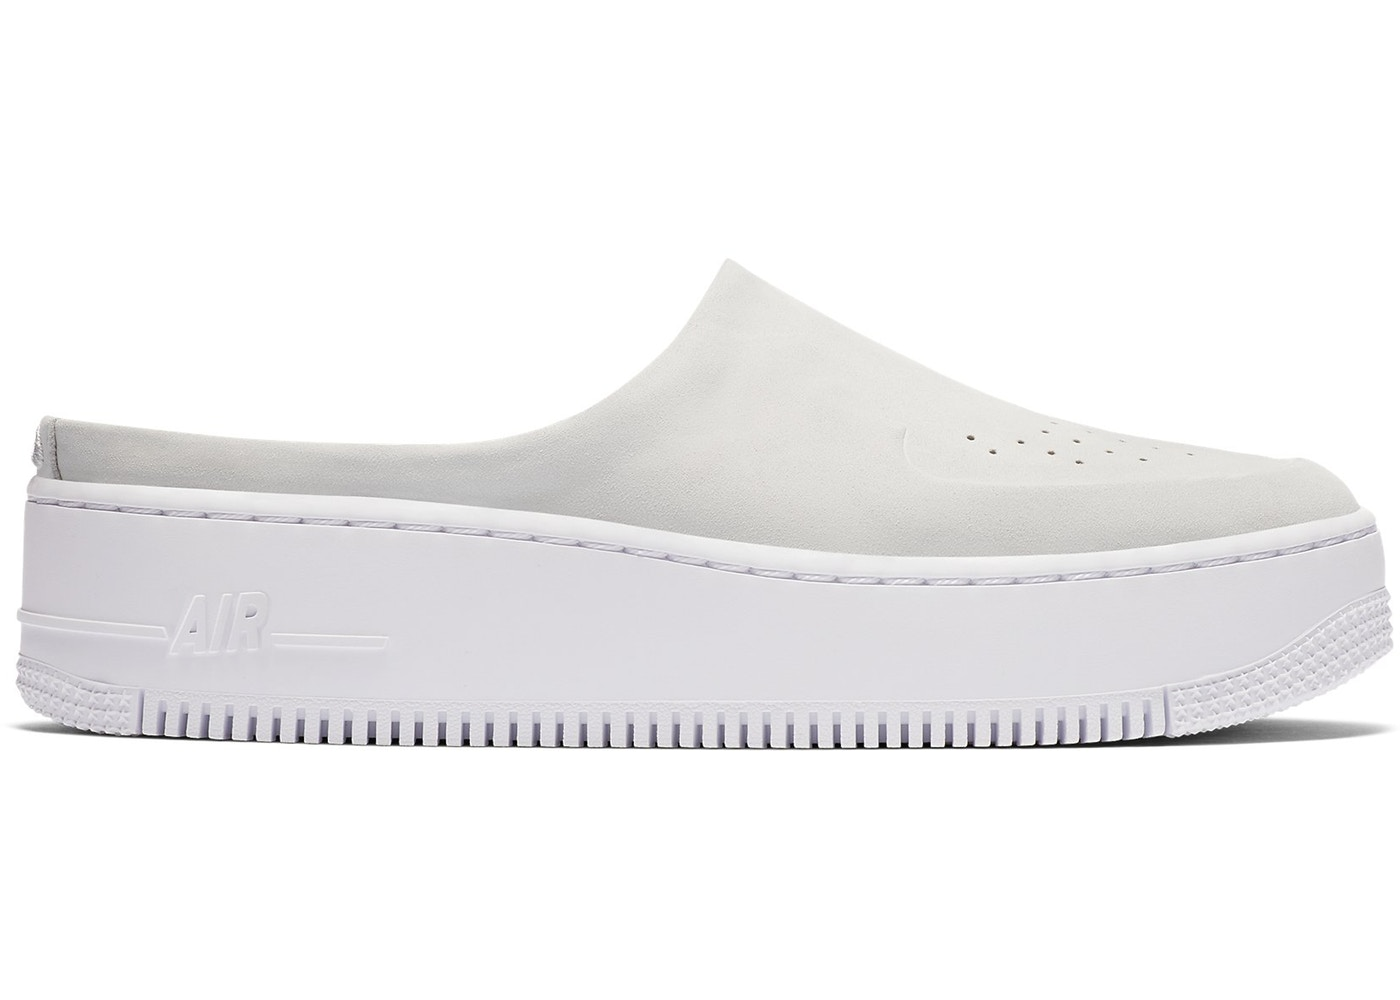 Air Force 1 Lover XX Off White (W) - AO1523-100 3730a7850